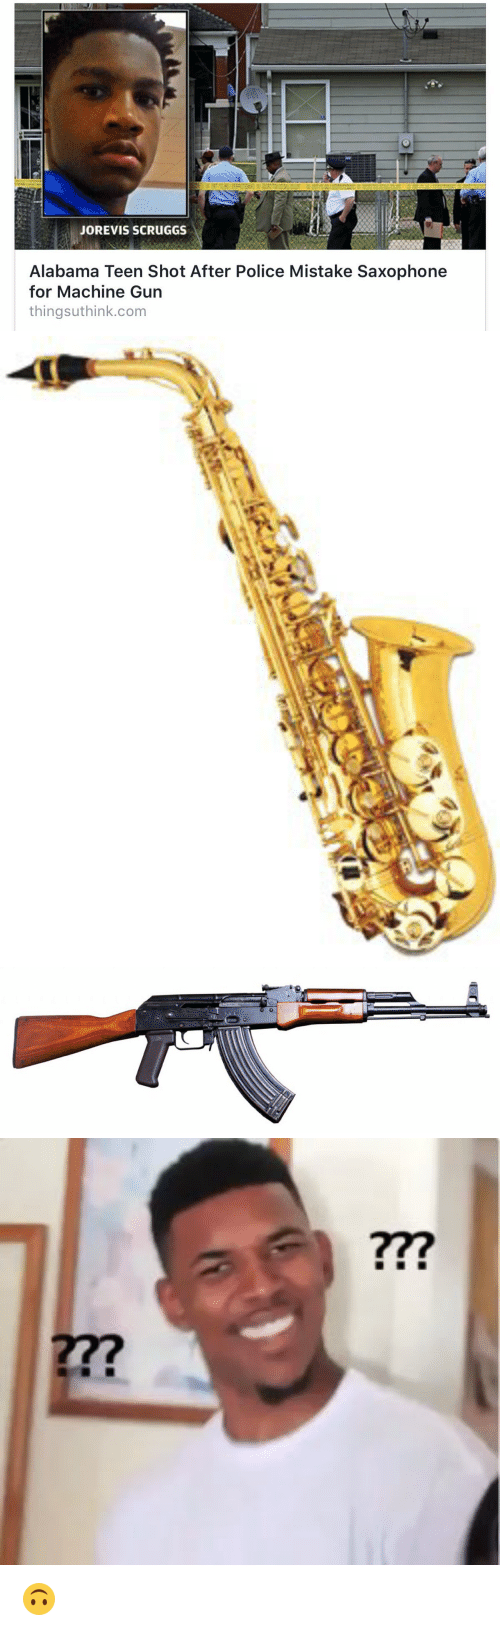 alabama after mistake saxophone for machine gun